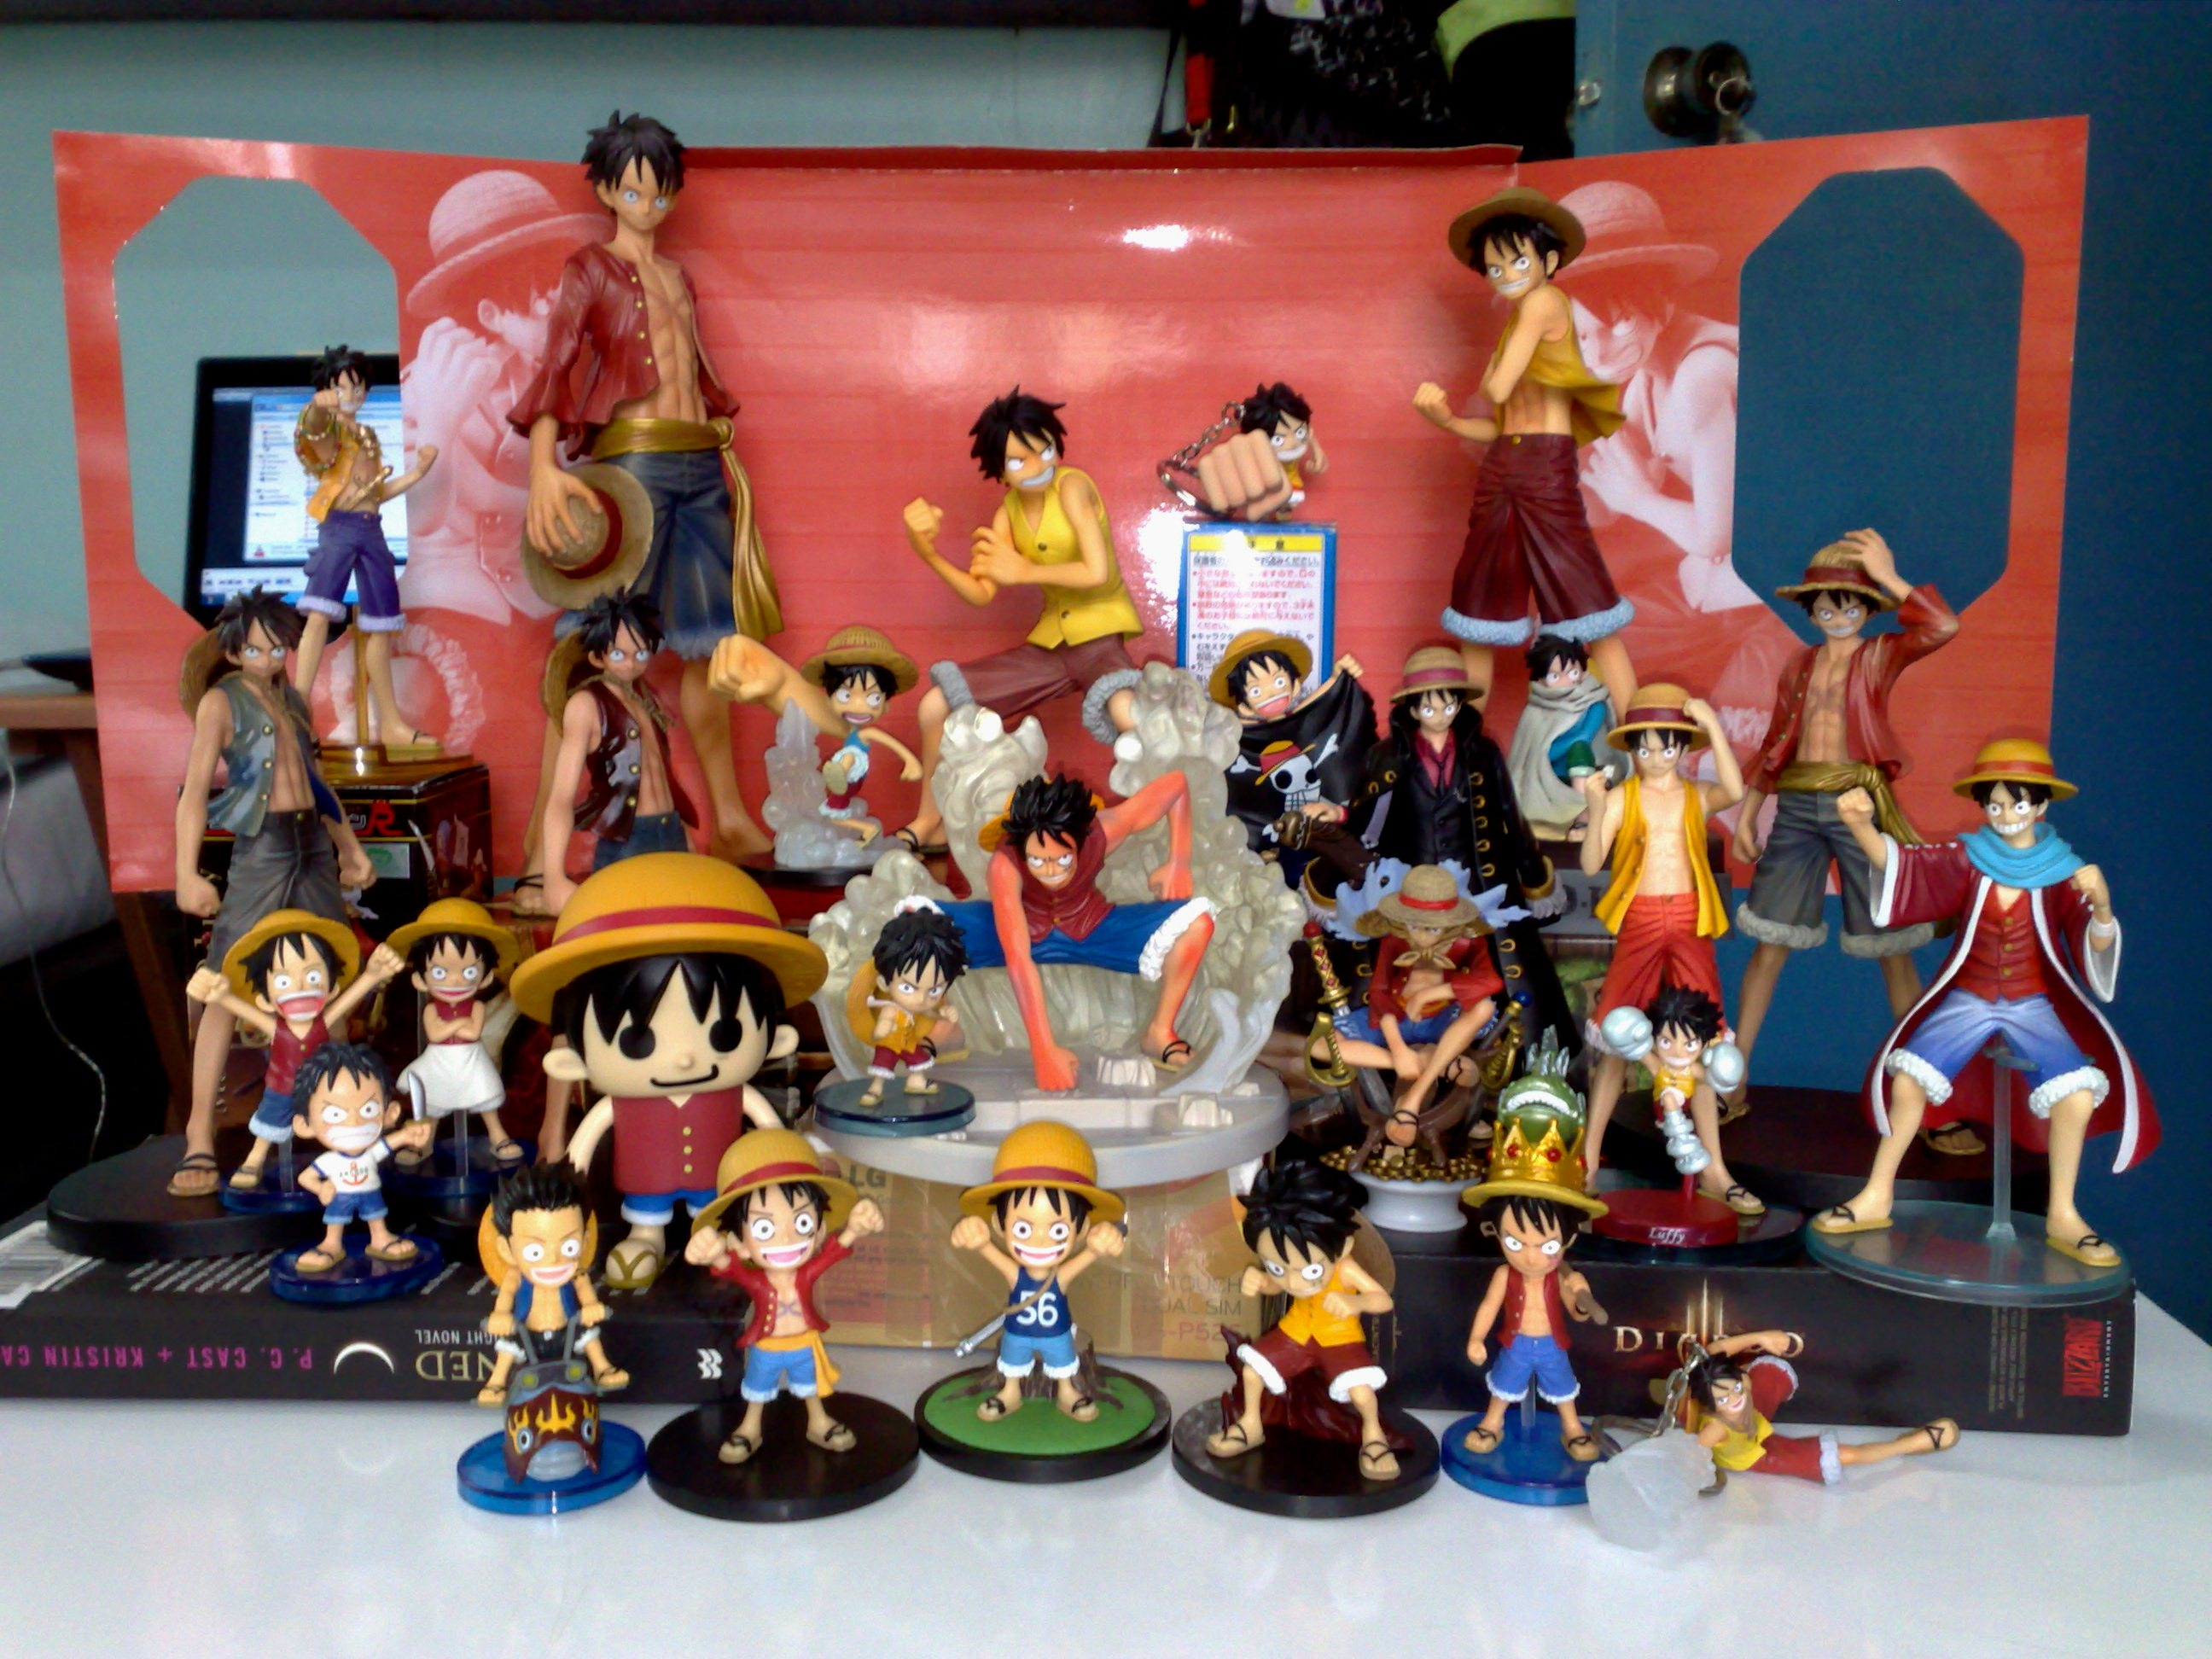 megahouse one_piece banpresto monkey_d._luffy bandai world_collectable_figure ichiban_kuji strawhat_luffy oda_eiichiro portrait_of_pirates_dx attm master_stars_piece the_grandline_men one_piece_film:_strong_world ichiban_kuji_one_piece_opening_a_new_era pansonworks ichiban_kuji_one_piece_~marineford_saishuu_kessen_hen~ ichiban_kuji_one_piece_~marineford_hen~ kengo_iida ichiban_kuji_one_piece_romance_dawn_for_the_new_world_first_part chess_piece_collection_r_one_piece_vol.1 one_piece_world_collectable_figure_vol.6 one_piece_world_collectable_figure_vol.7 one_piece_world_collectable_figure_vol.8 one_piece_world_collectable_figure_vol.9 one_piece_world_collectable_figure_vol.10 one_piece_world_collectable_figure_vol.19